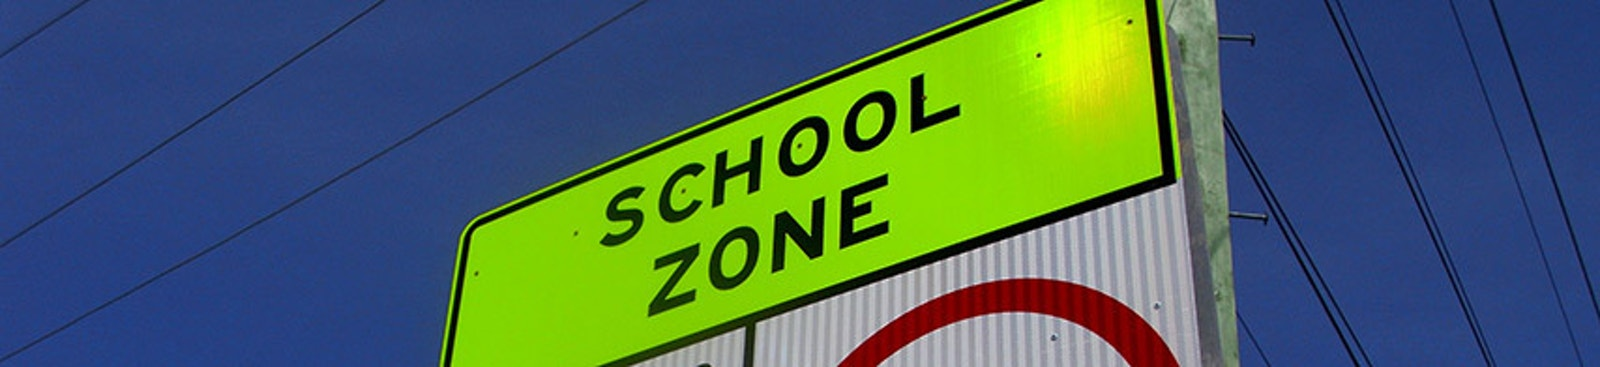 New Fluorescent School Zone Sign Blog